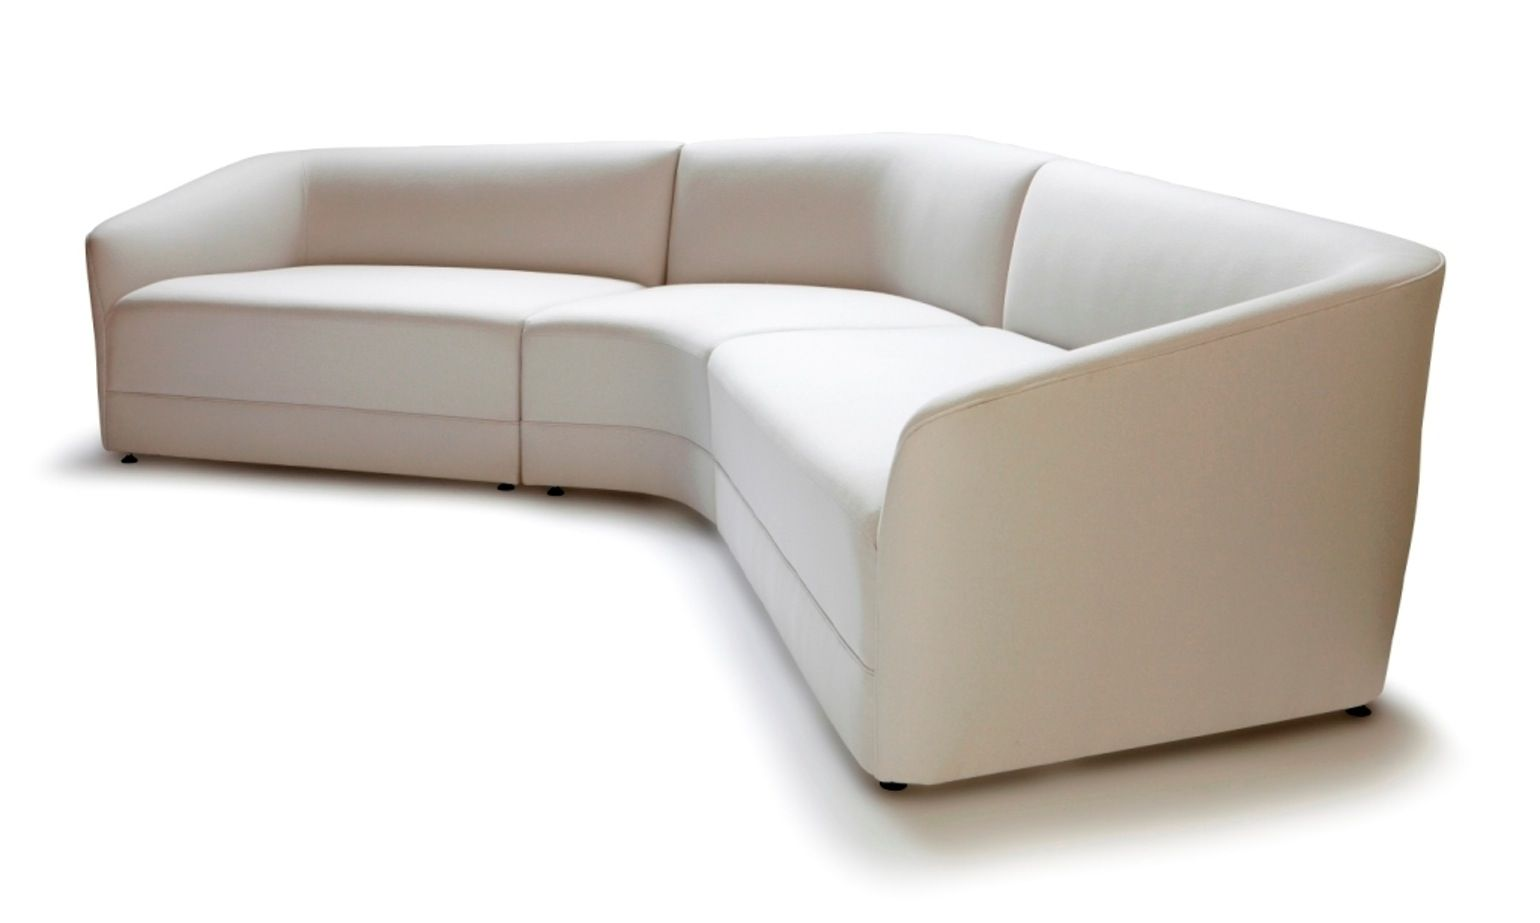 Eaton Sofa MidCentury Modern, Upholstery Fabric, Sectional Sofa By Michael  Reeves Associates